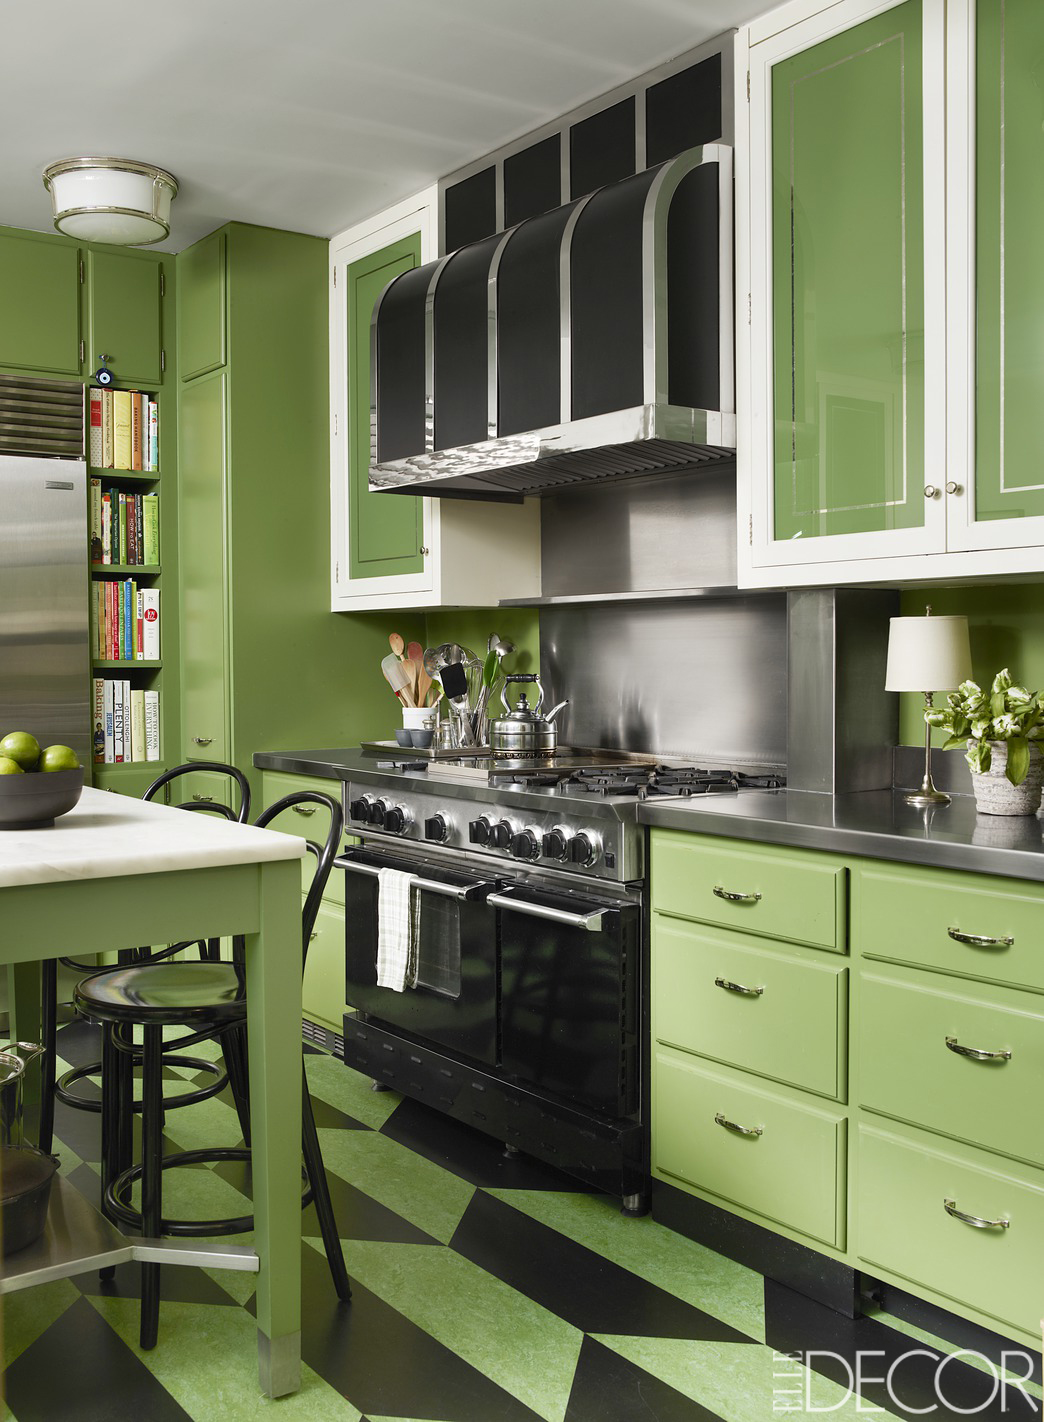 small kitchen designs 50 small kitchen design ideas - decorating tiny kitchens LGDWHAG